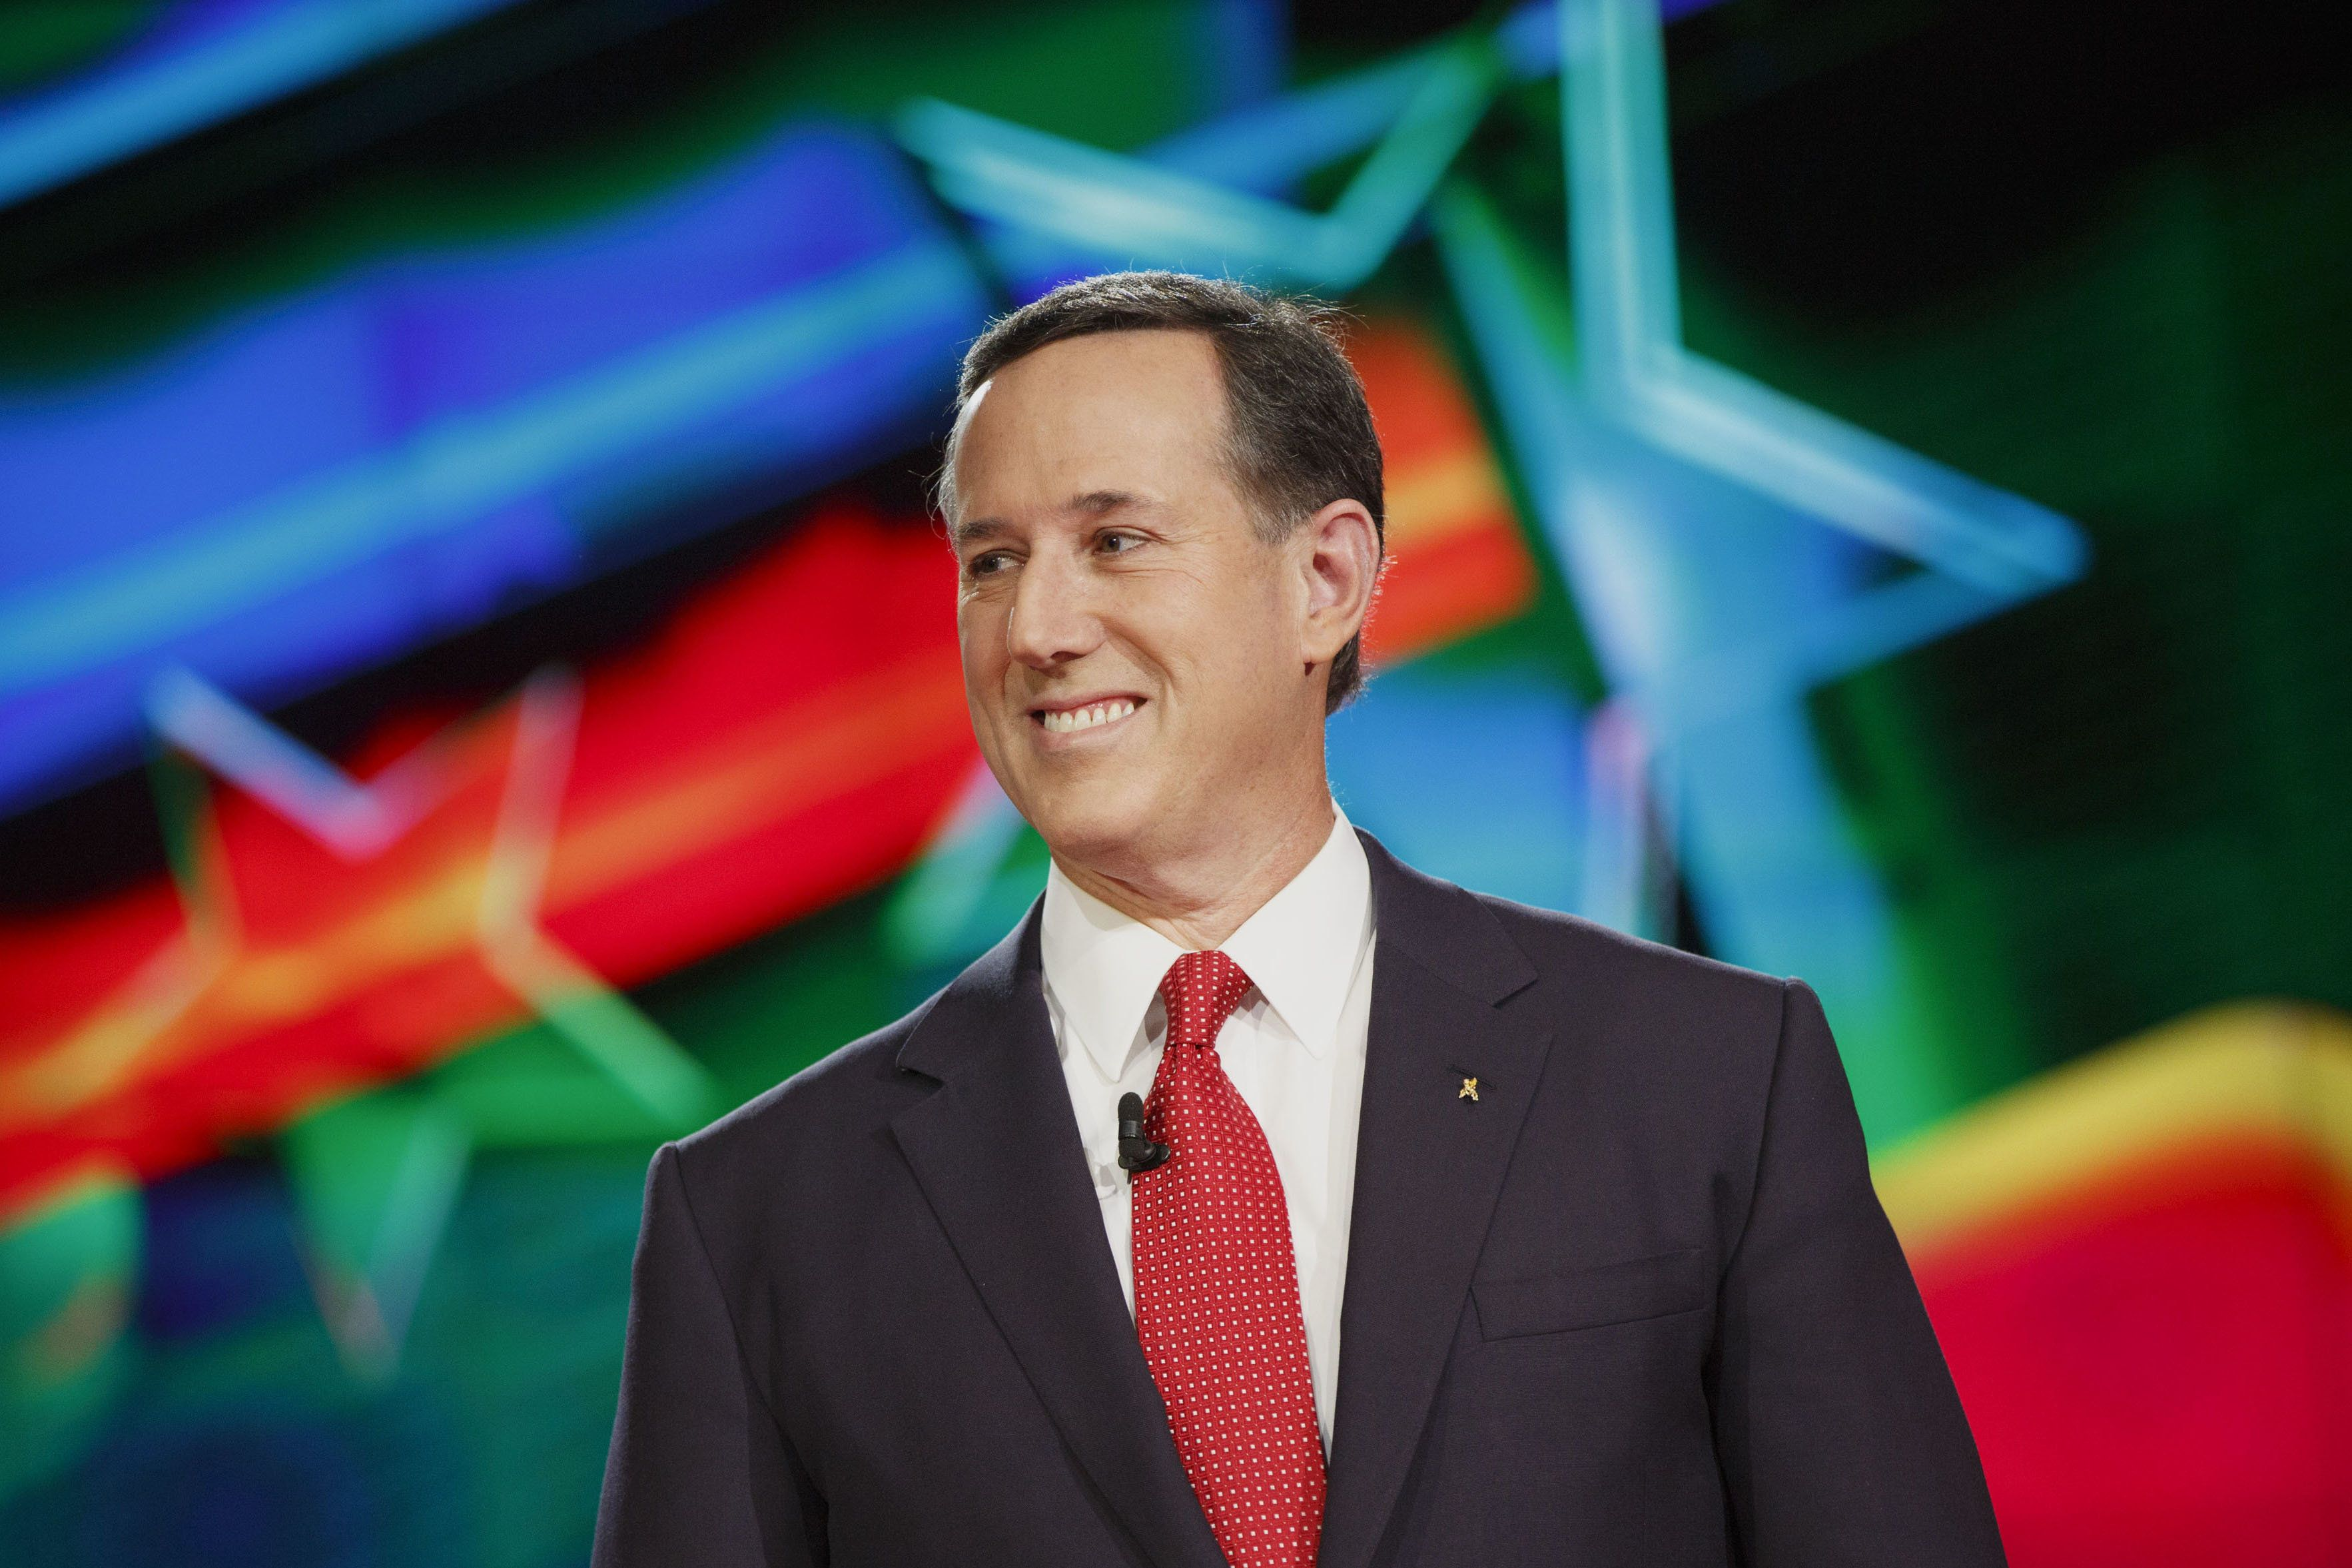 CNN sees no cause to fire Rick Santorum, who in the past has denied that Palestinians even exist and has claimed same-sex marriage is akin to terrorism.